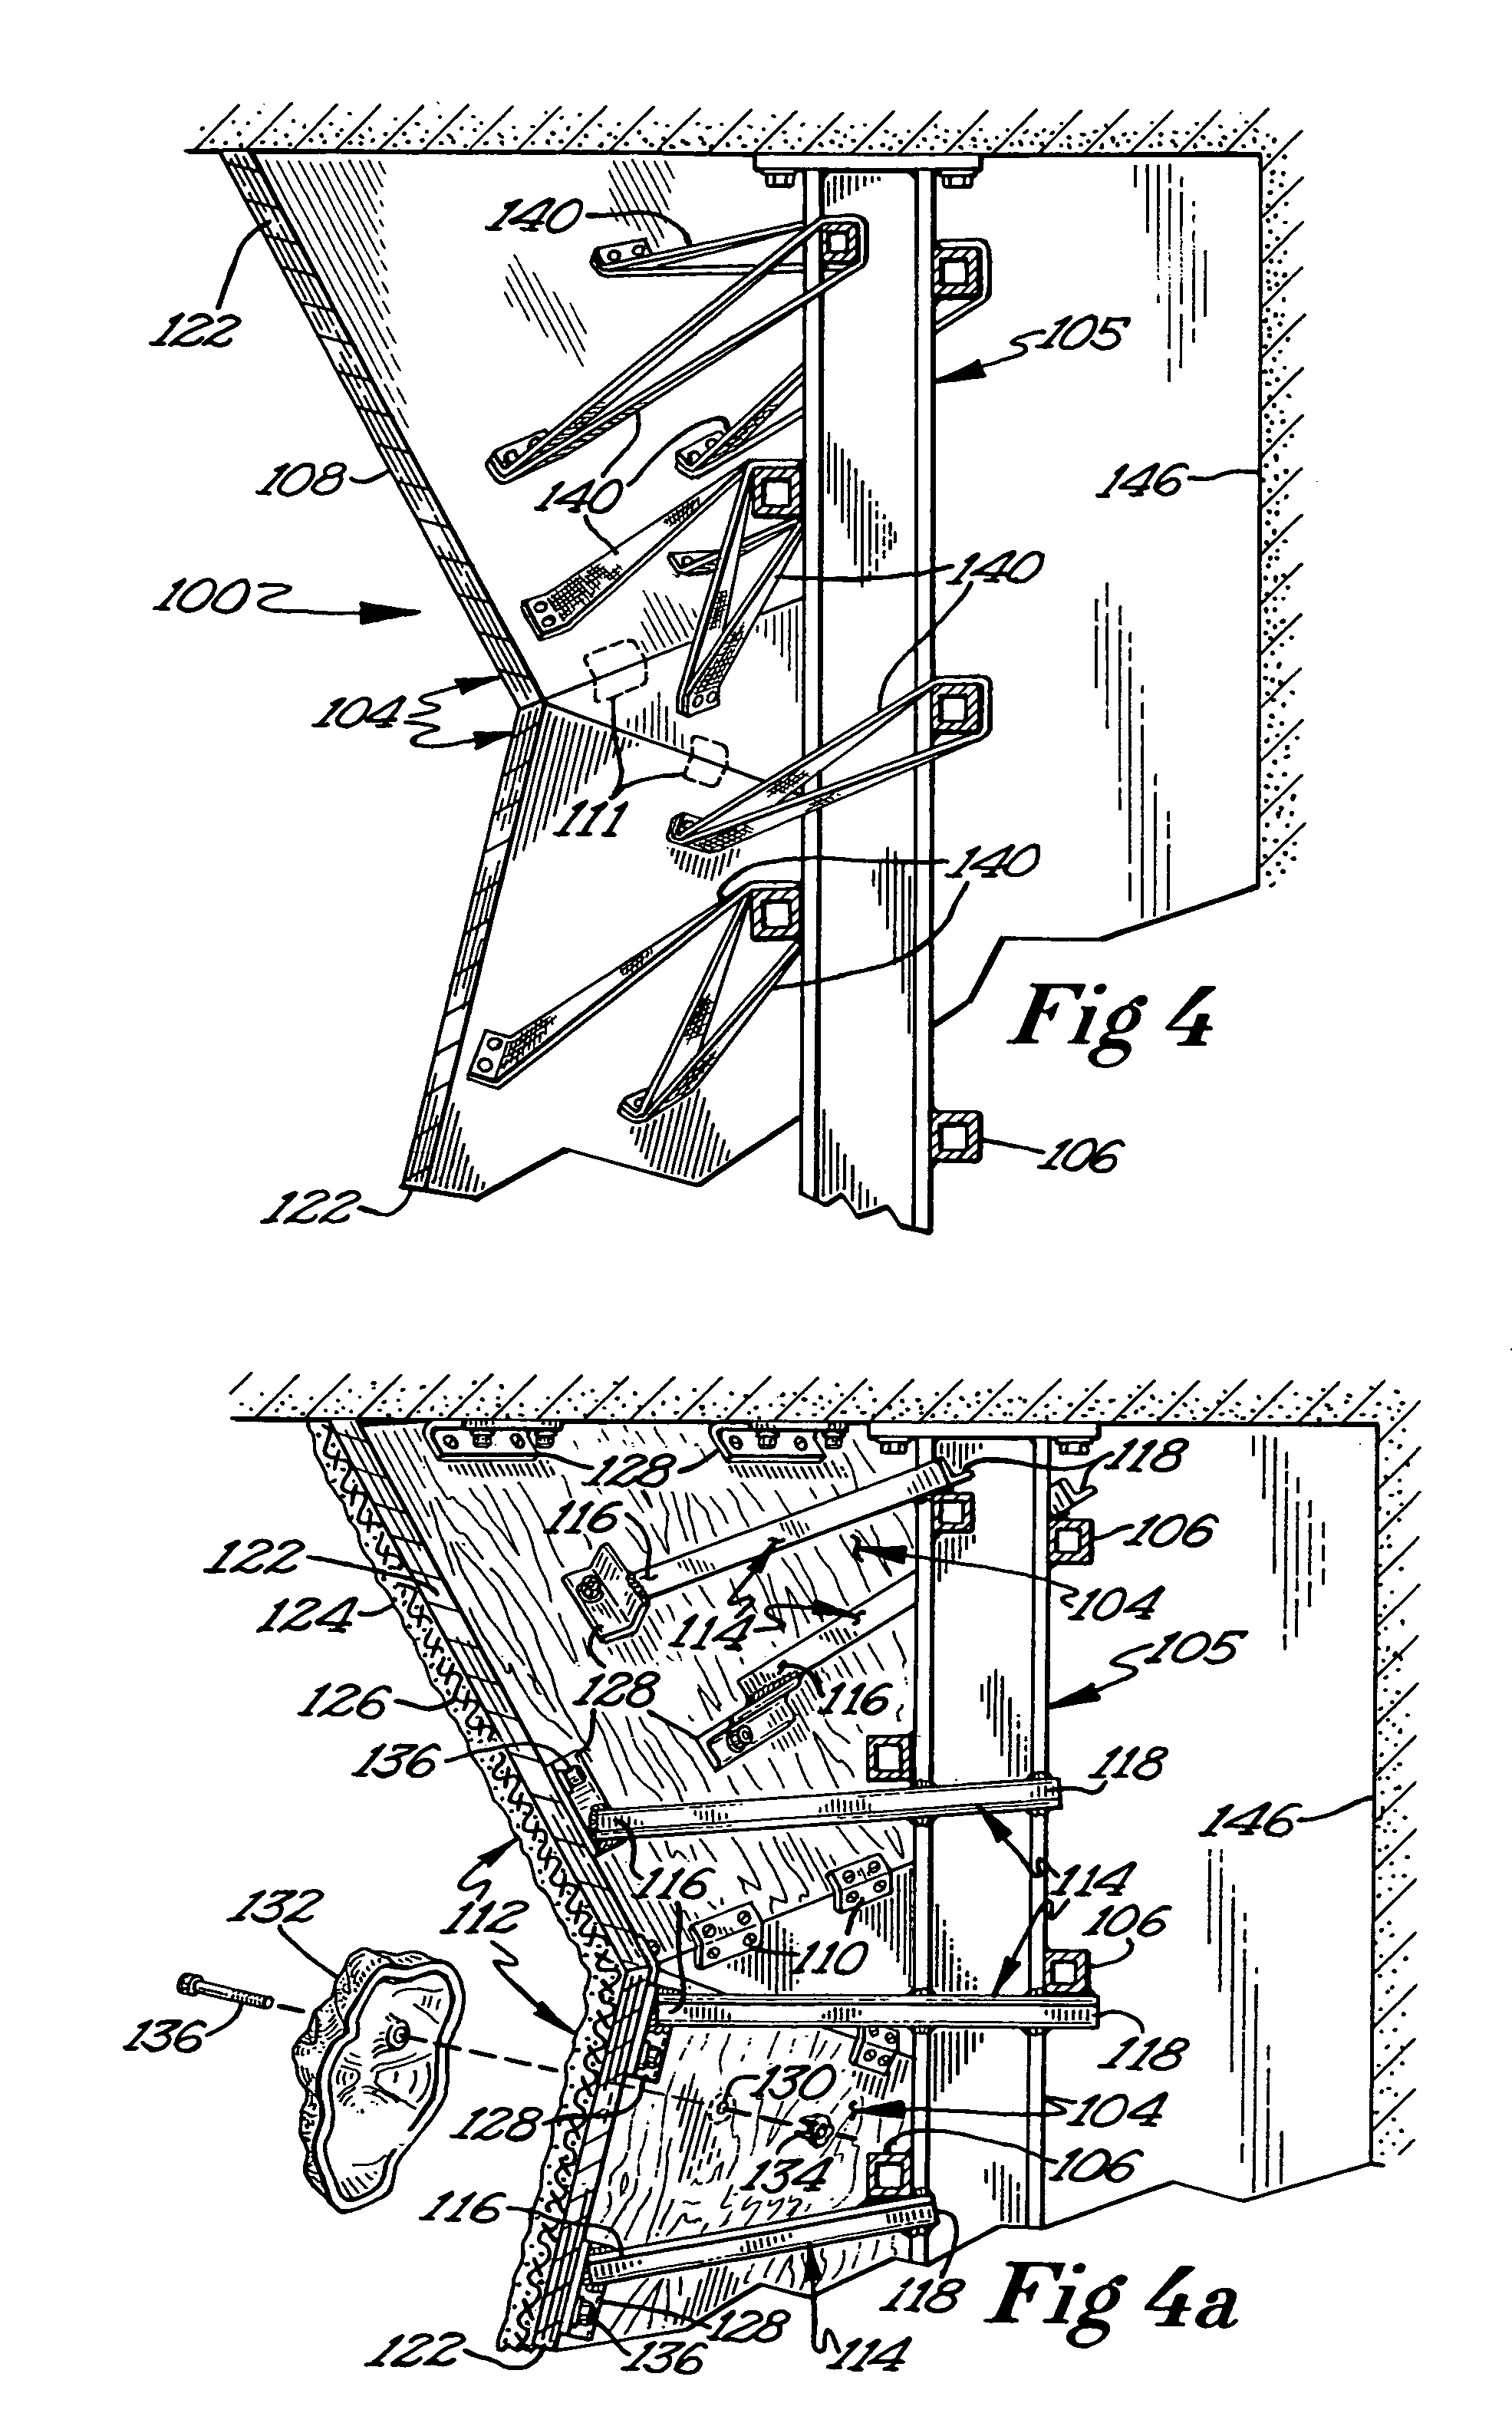 Us7572207b2 Climbing Wall Structure And Method Of Construction